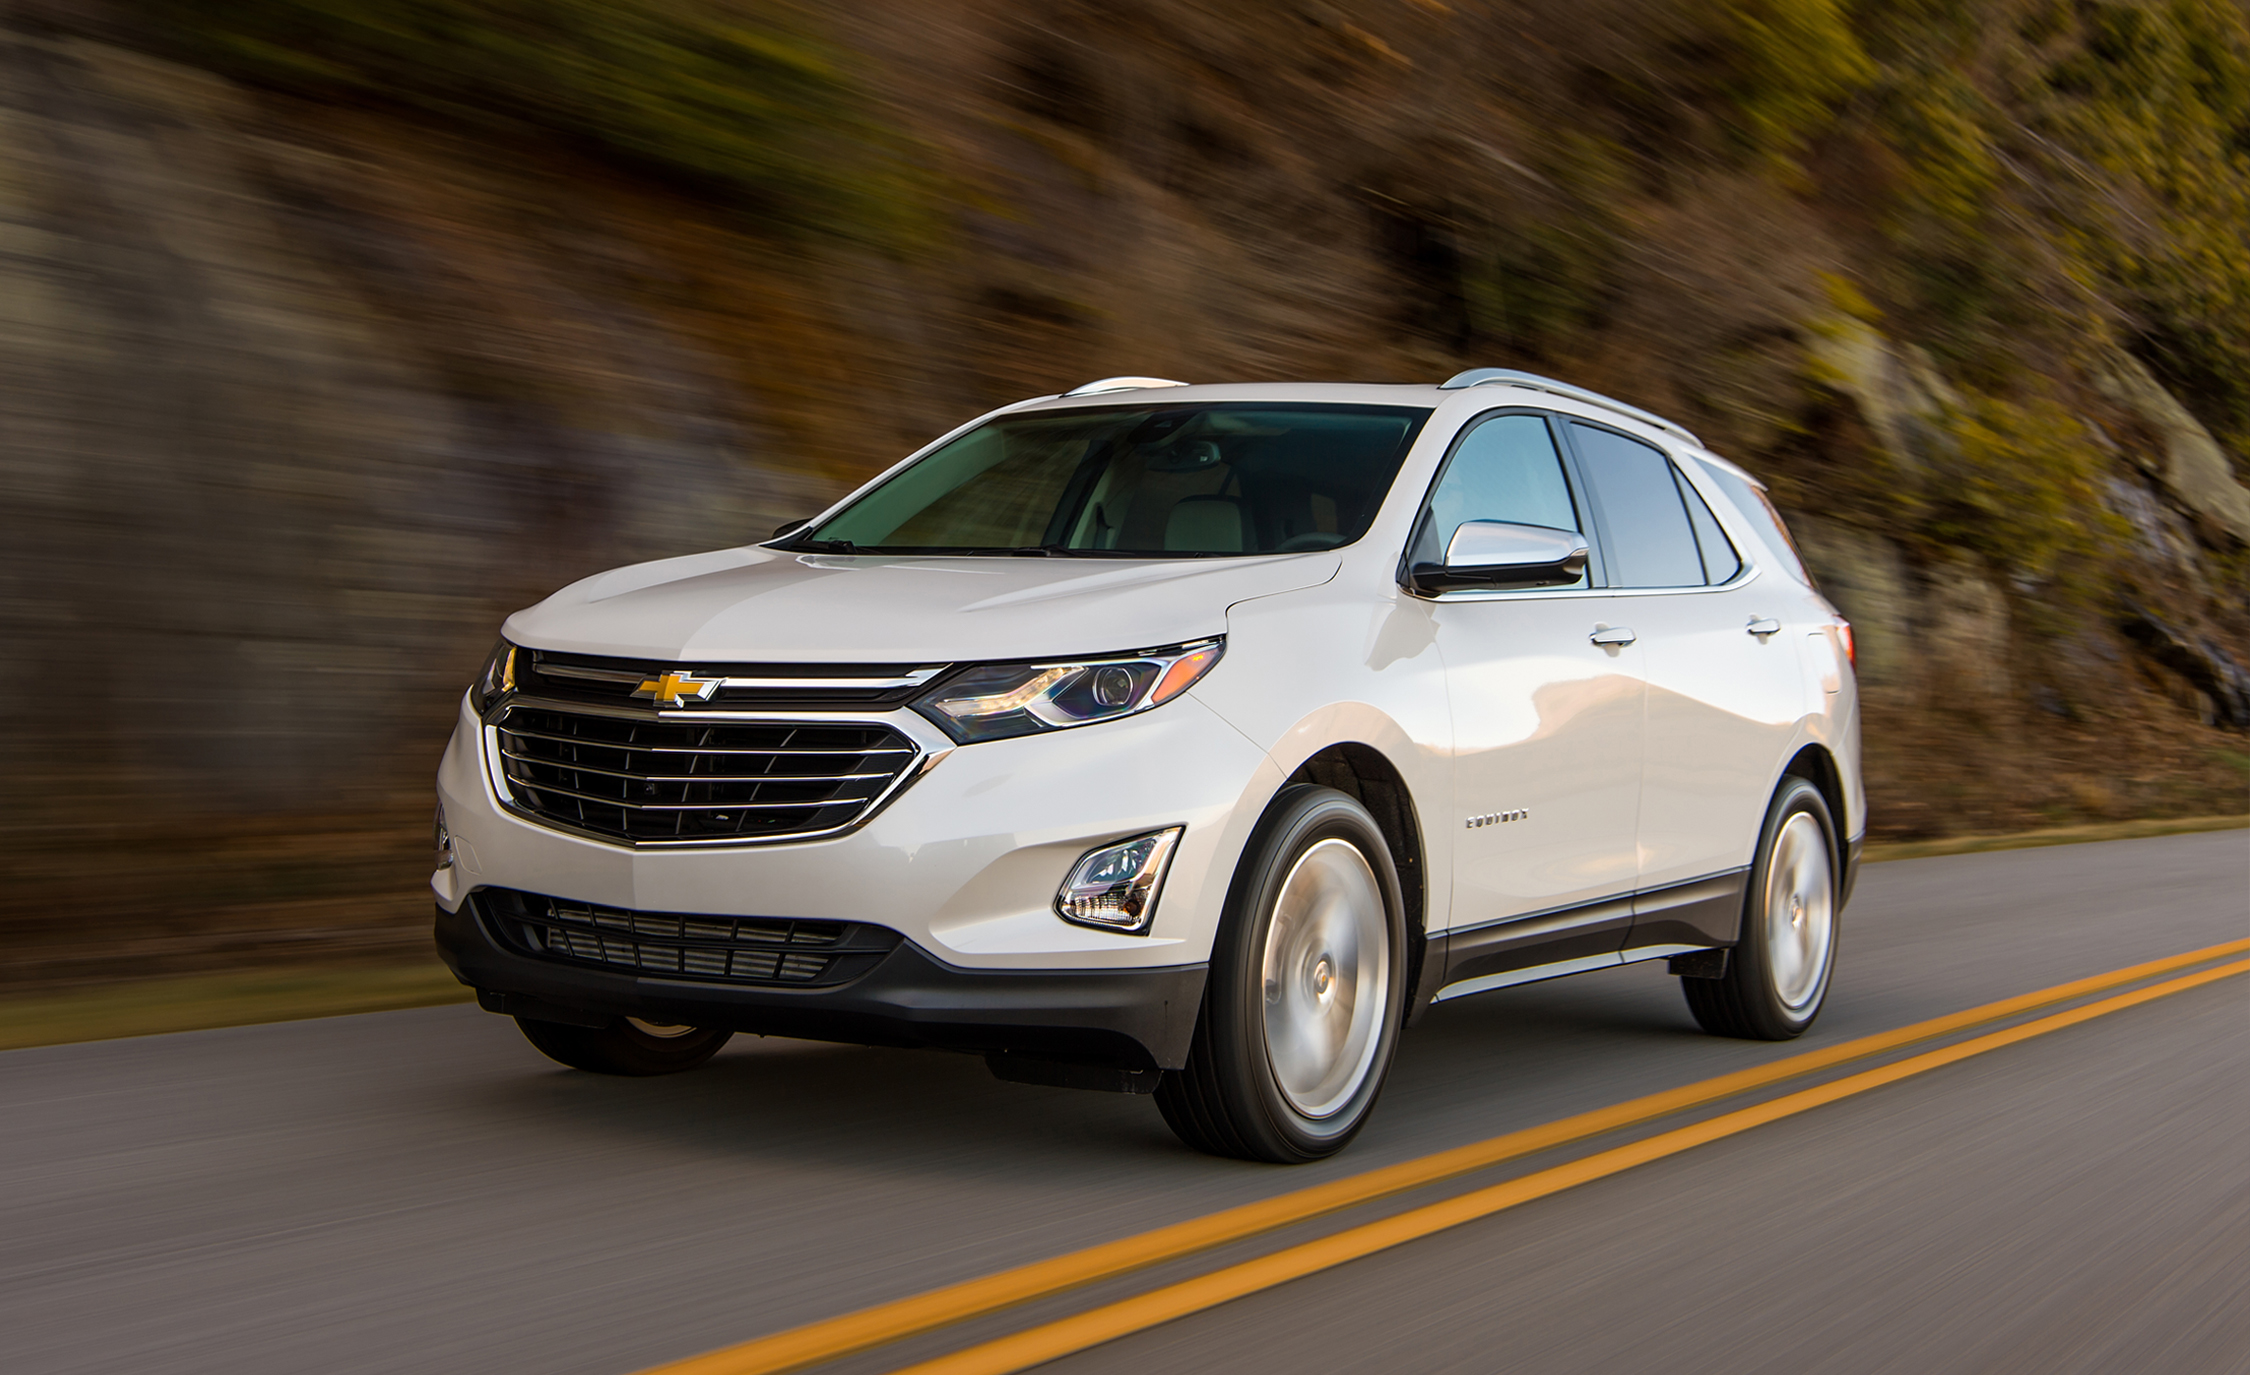 d pa dealers for near interior cc philadelphia chevrolet sale equinox jeff in